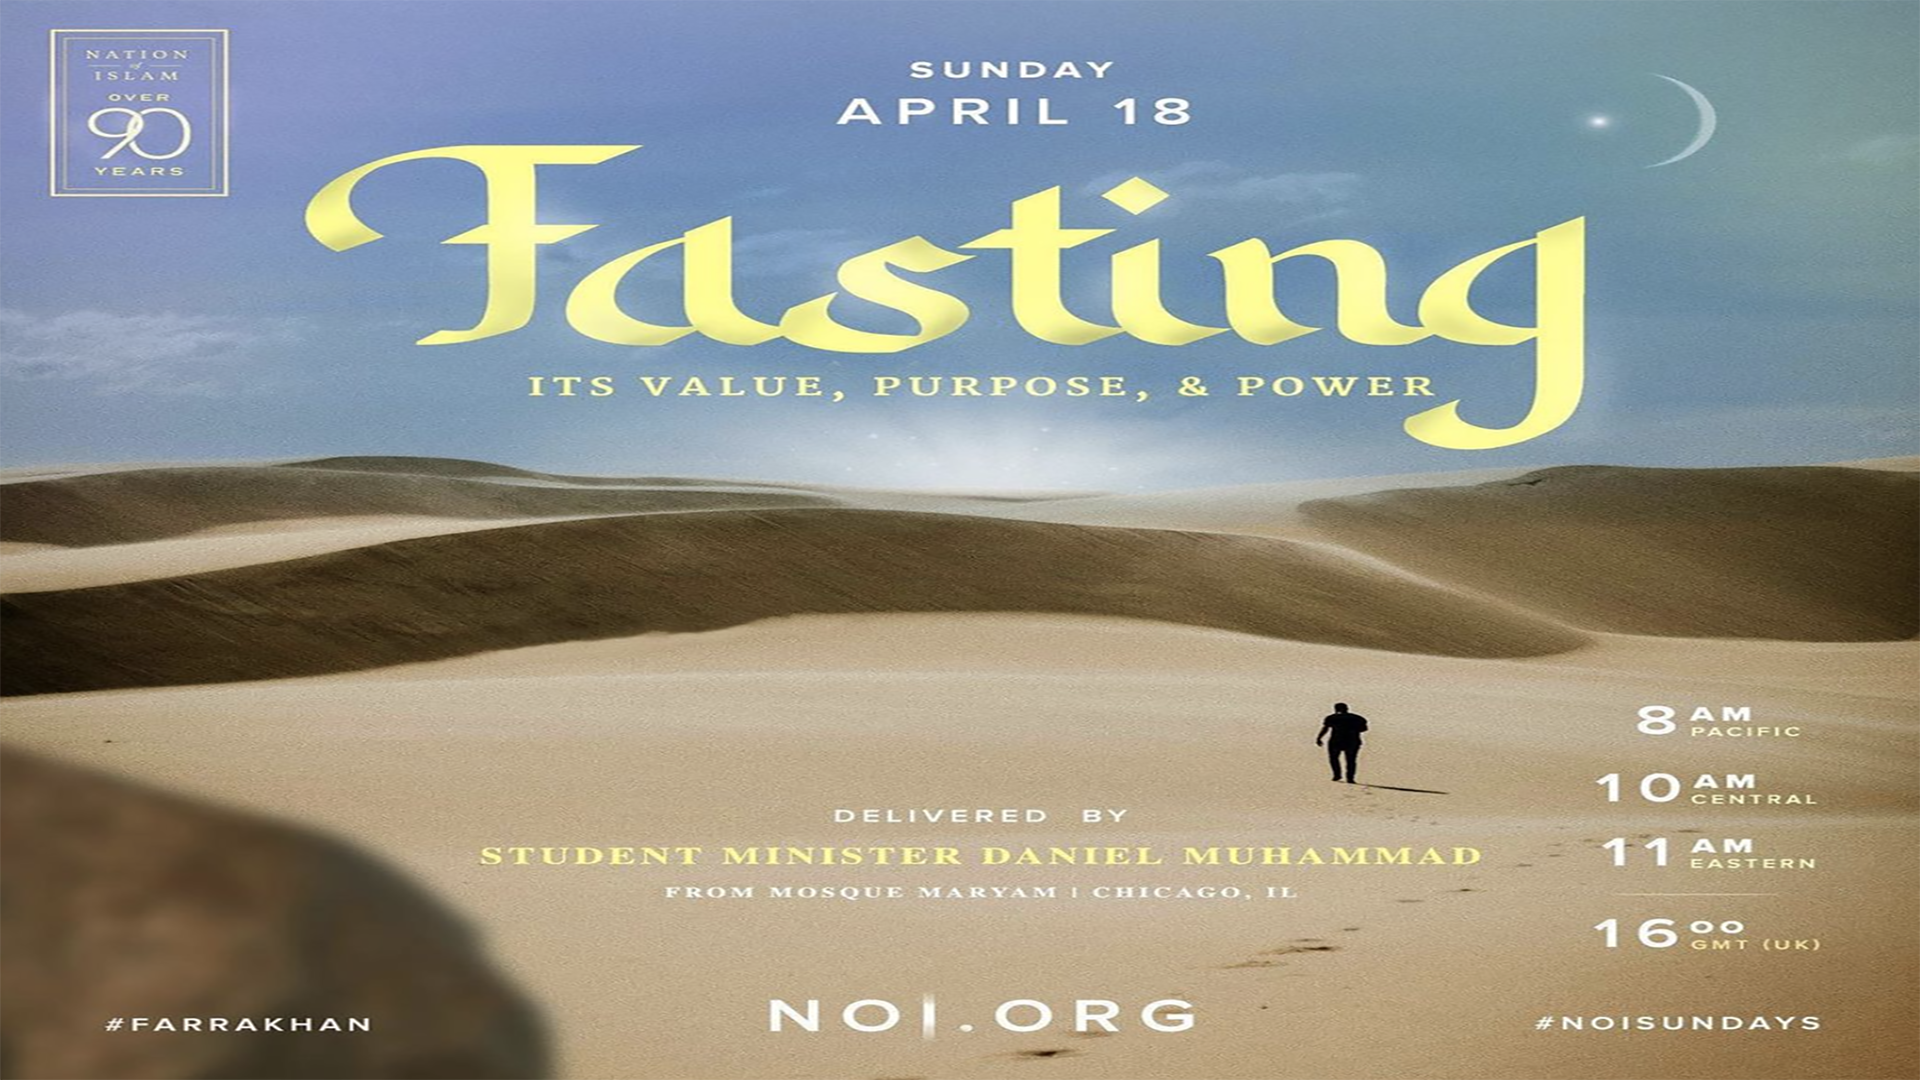 Fasting: It's Value, Purpose and Power